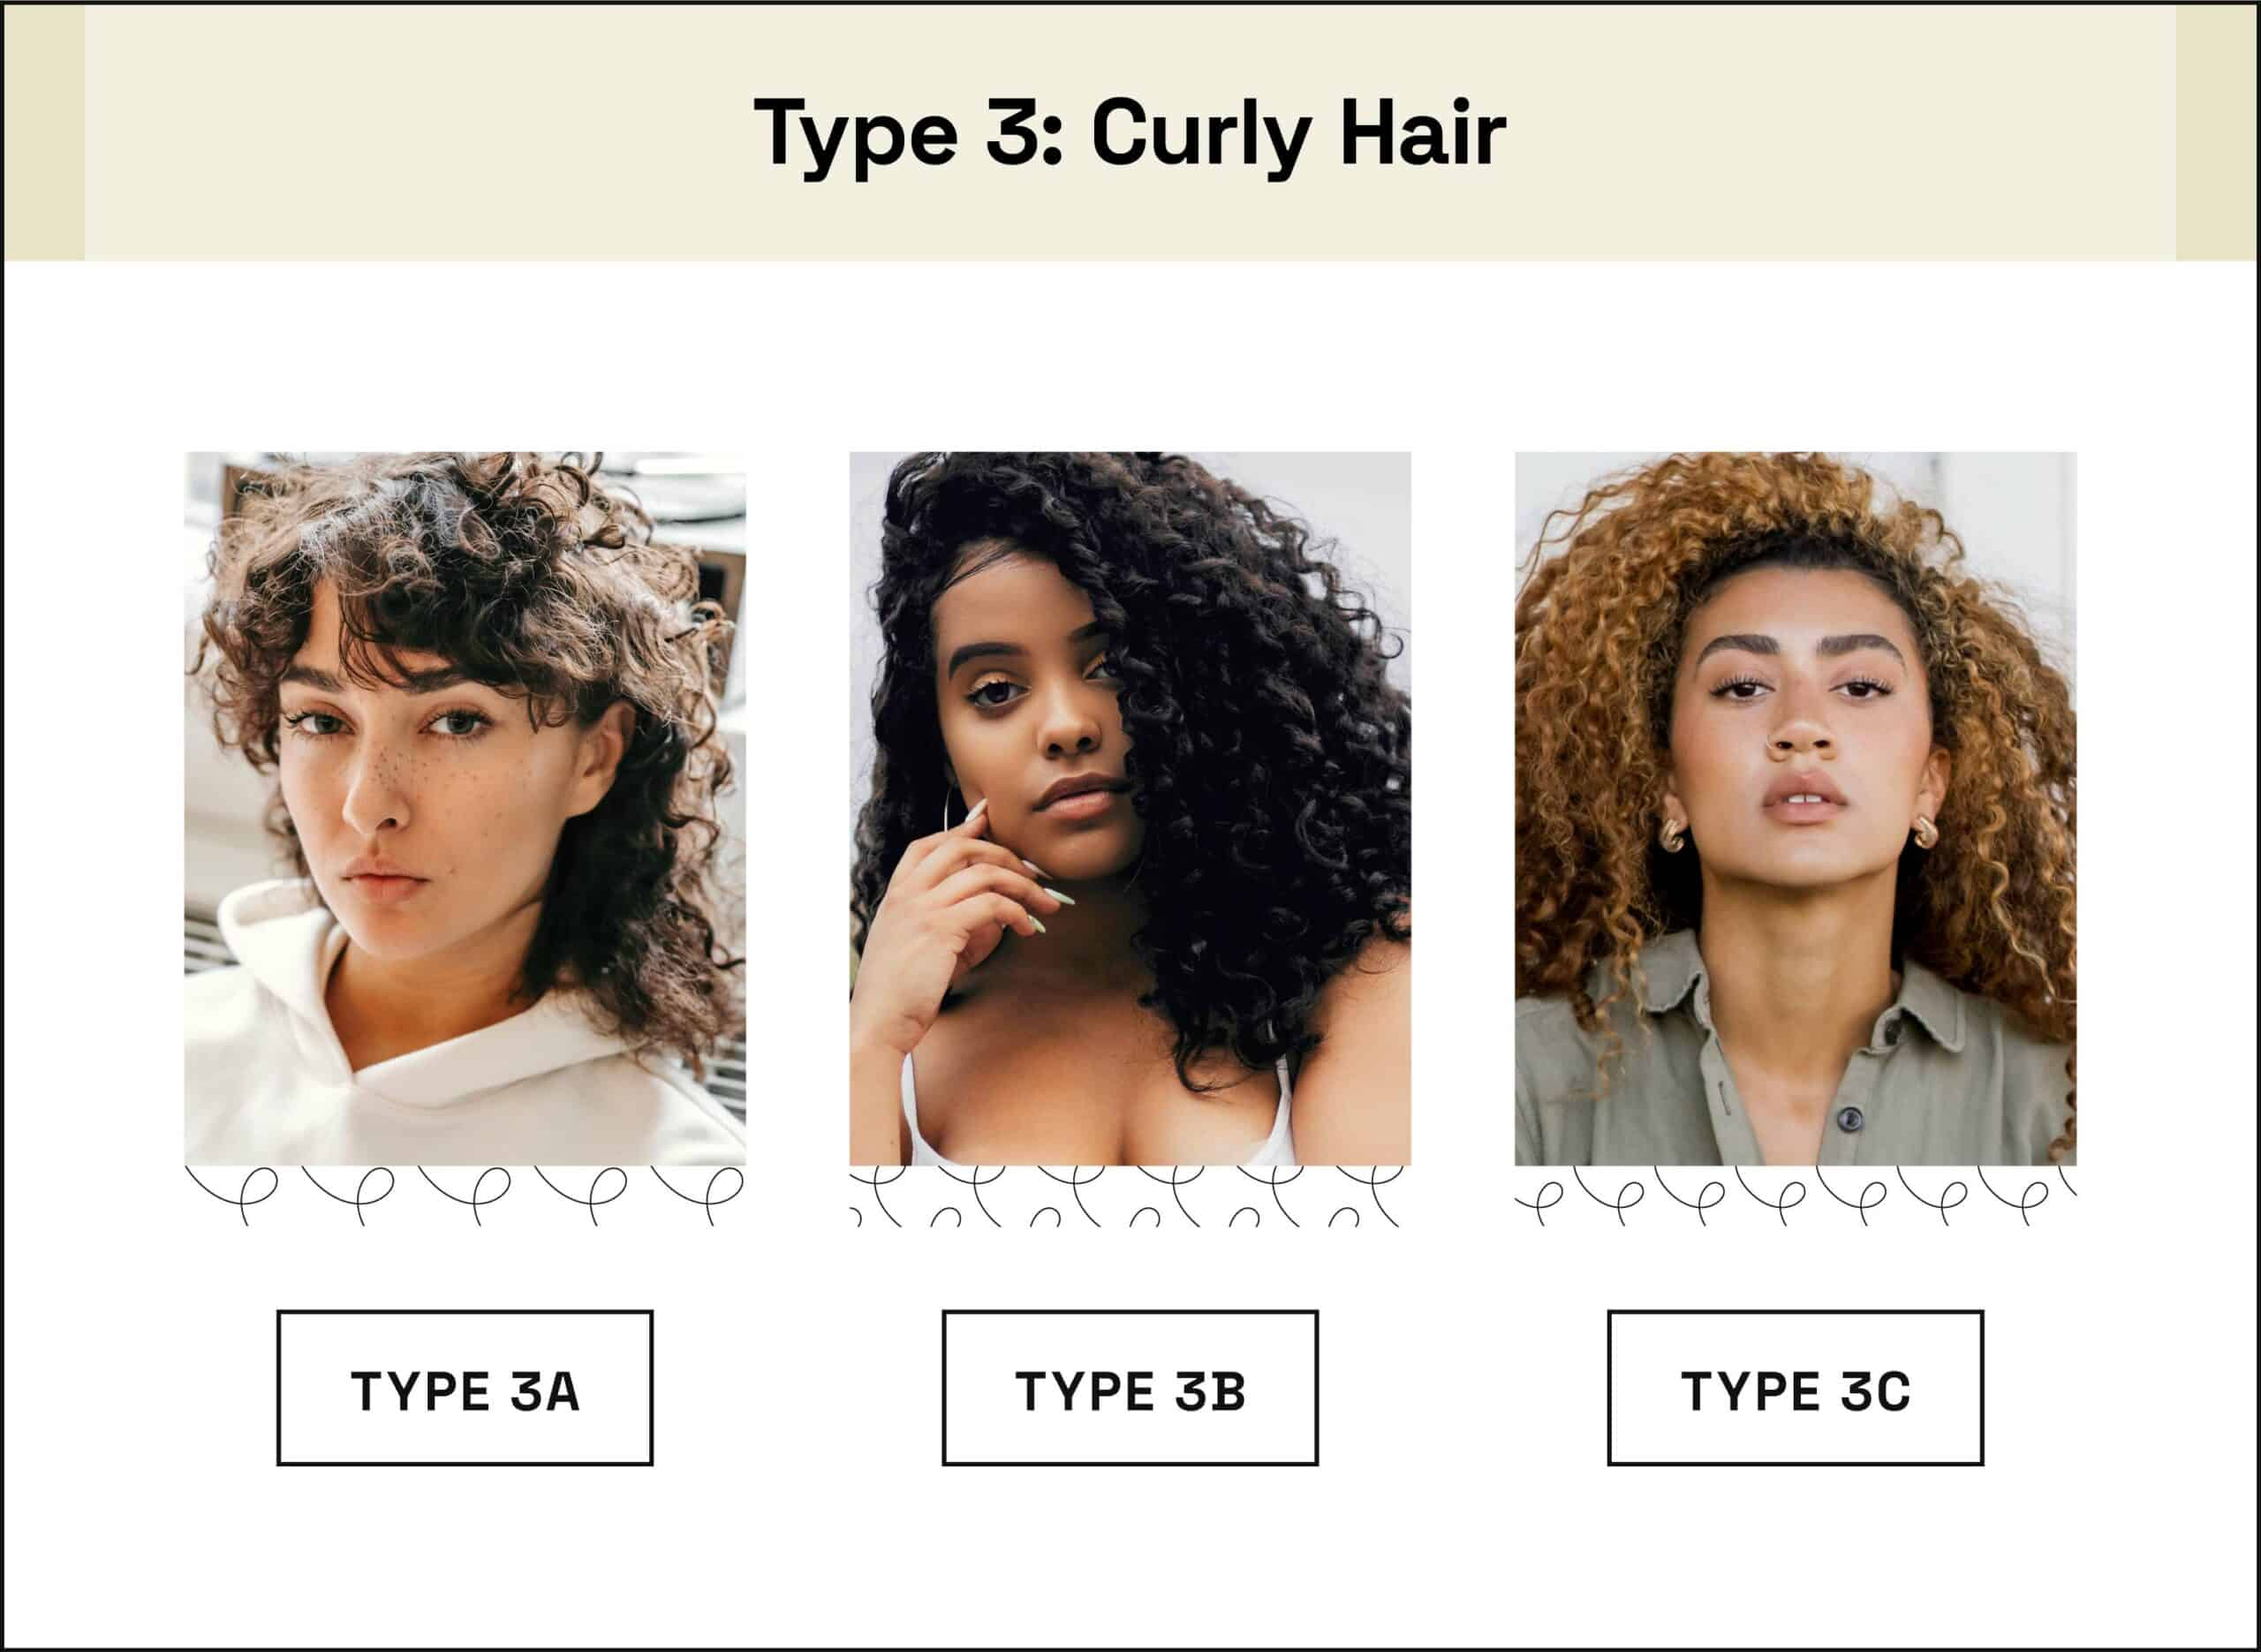 examples of type 3a 3b 3c hair textures